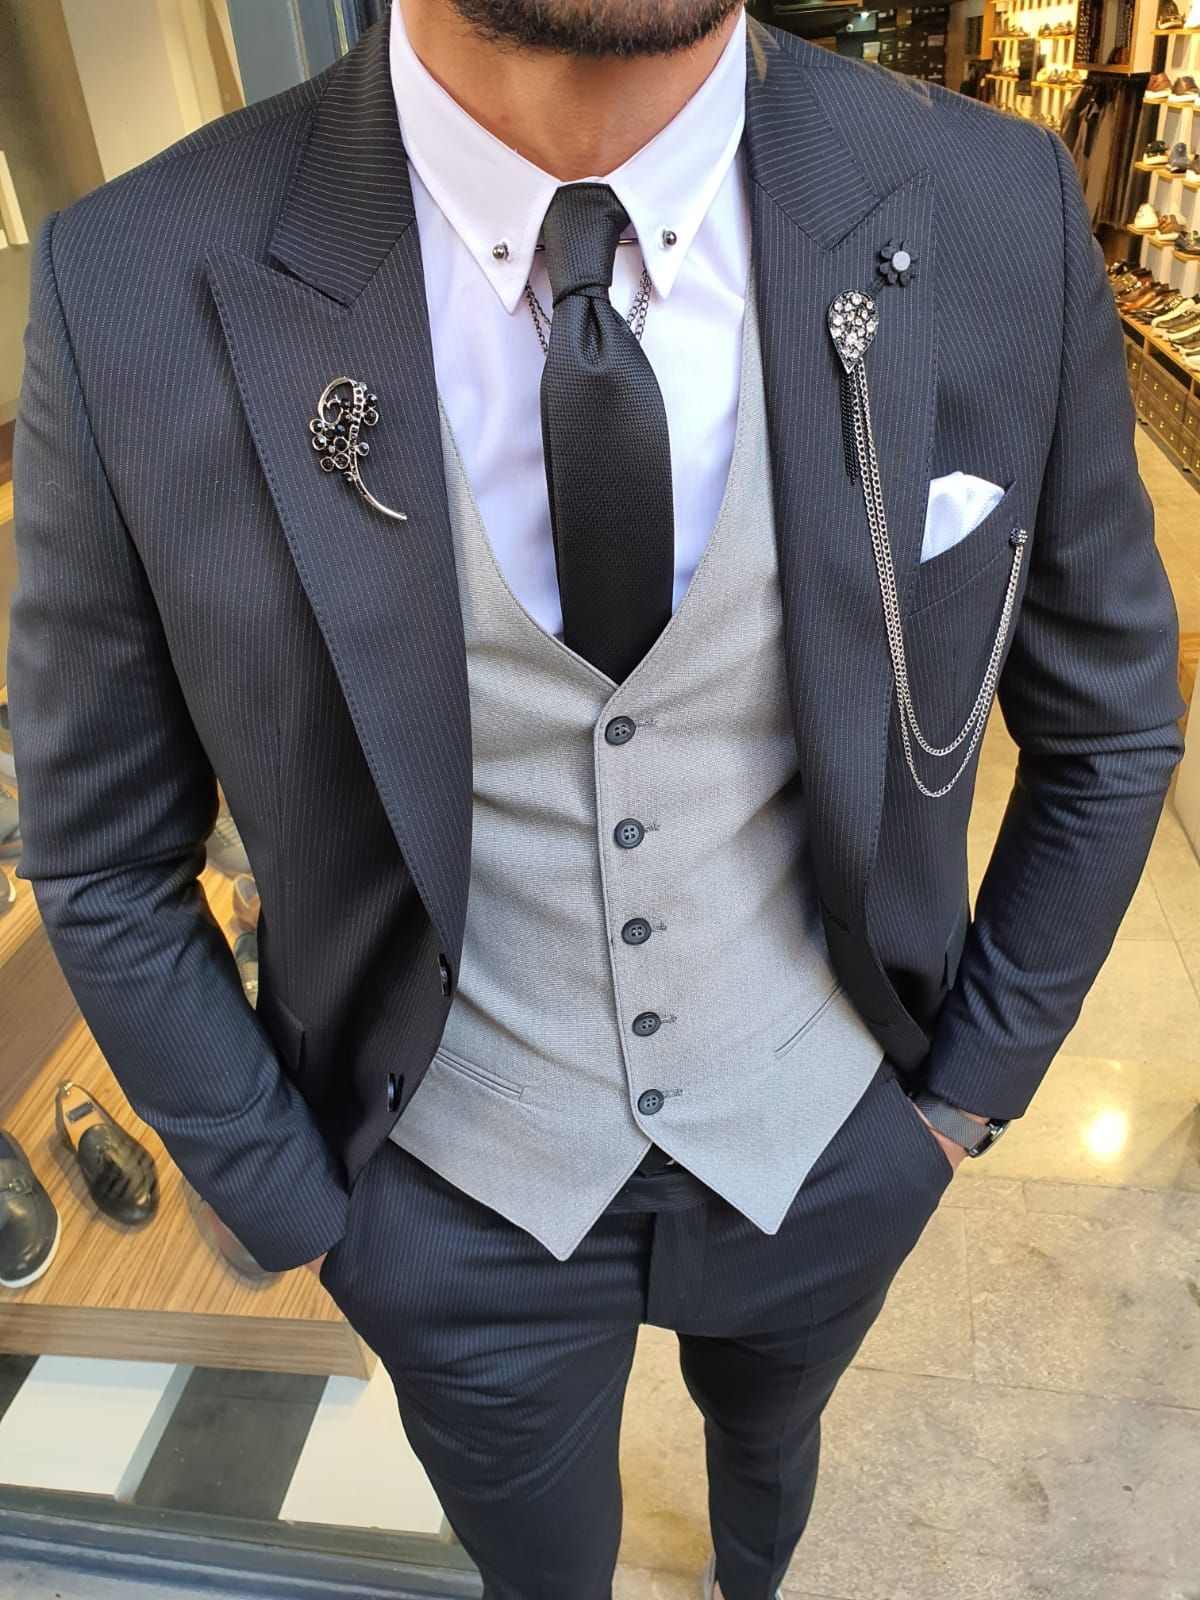 Buy Black Slim Fit Pinstripe Suit By Gentwith Com With Free Shipping In 2020 Stylish Mens Suits Blue Slim Fit Suit Designer Suits For Men